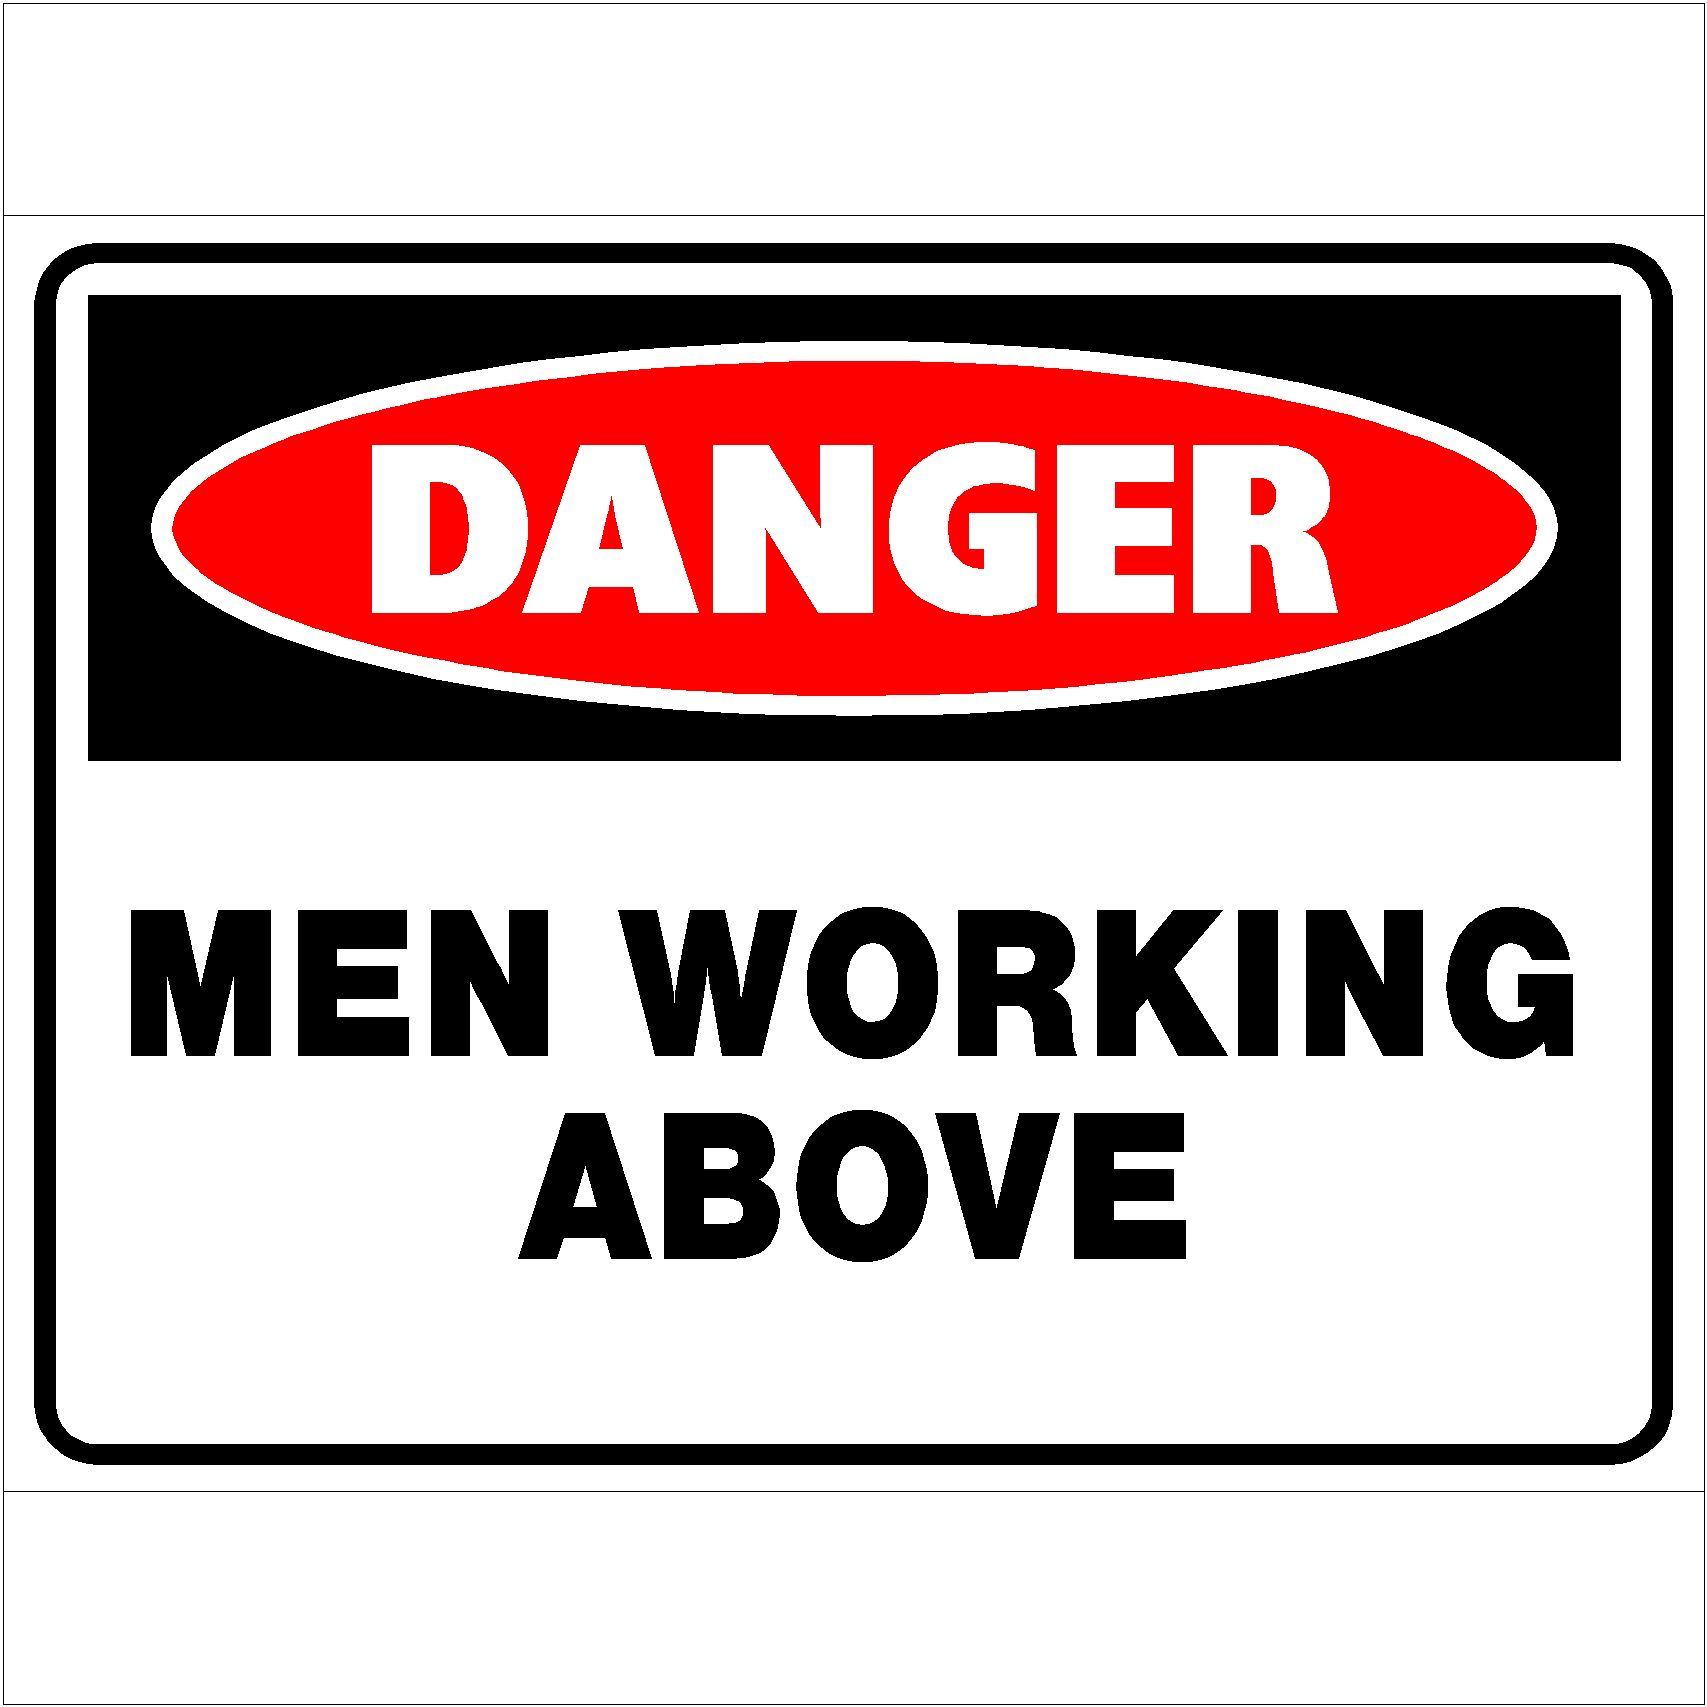 Danger Men Working Above